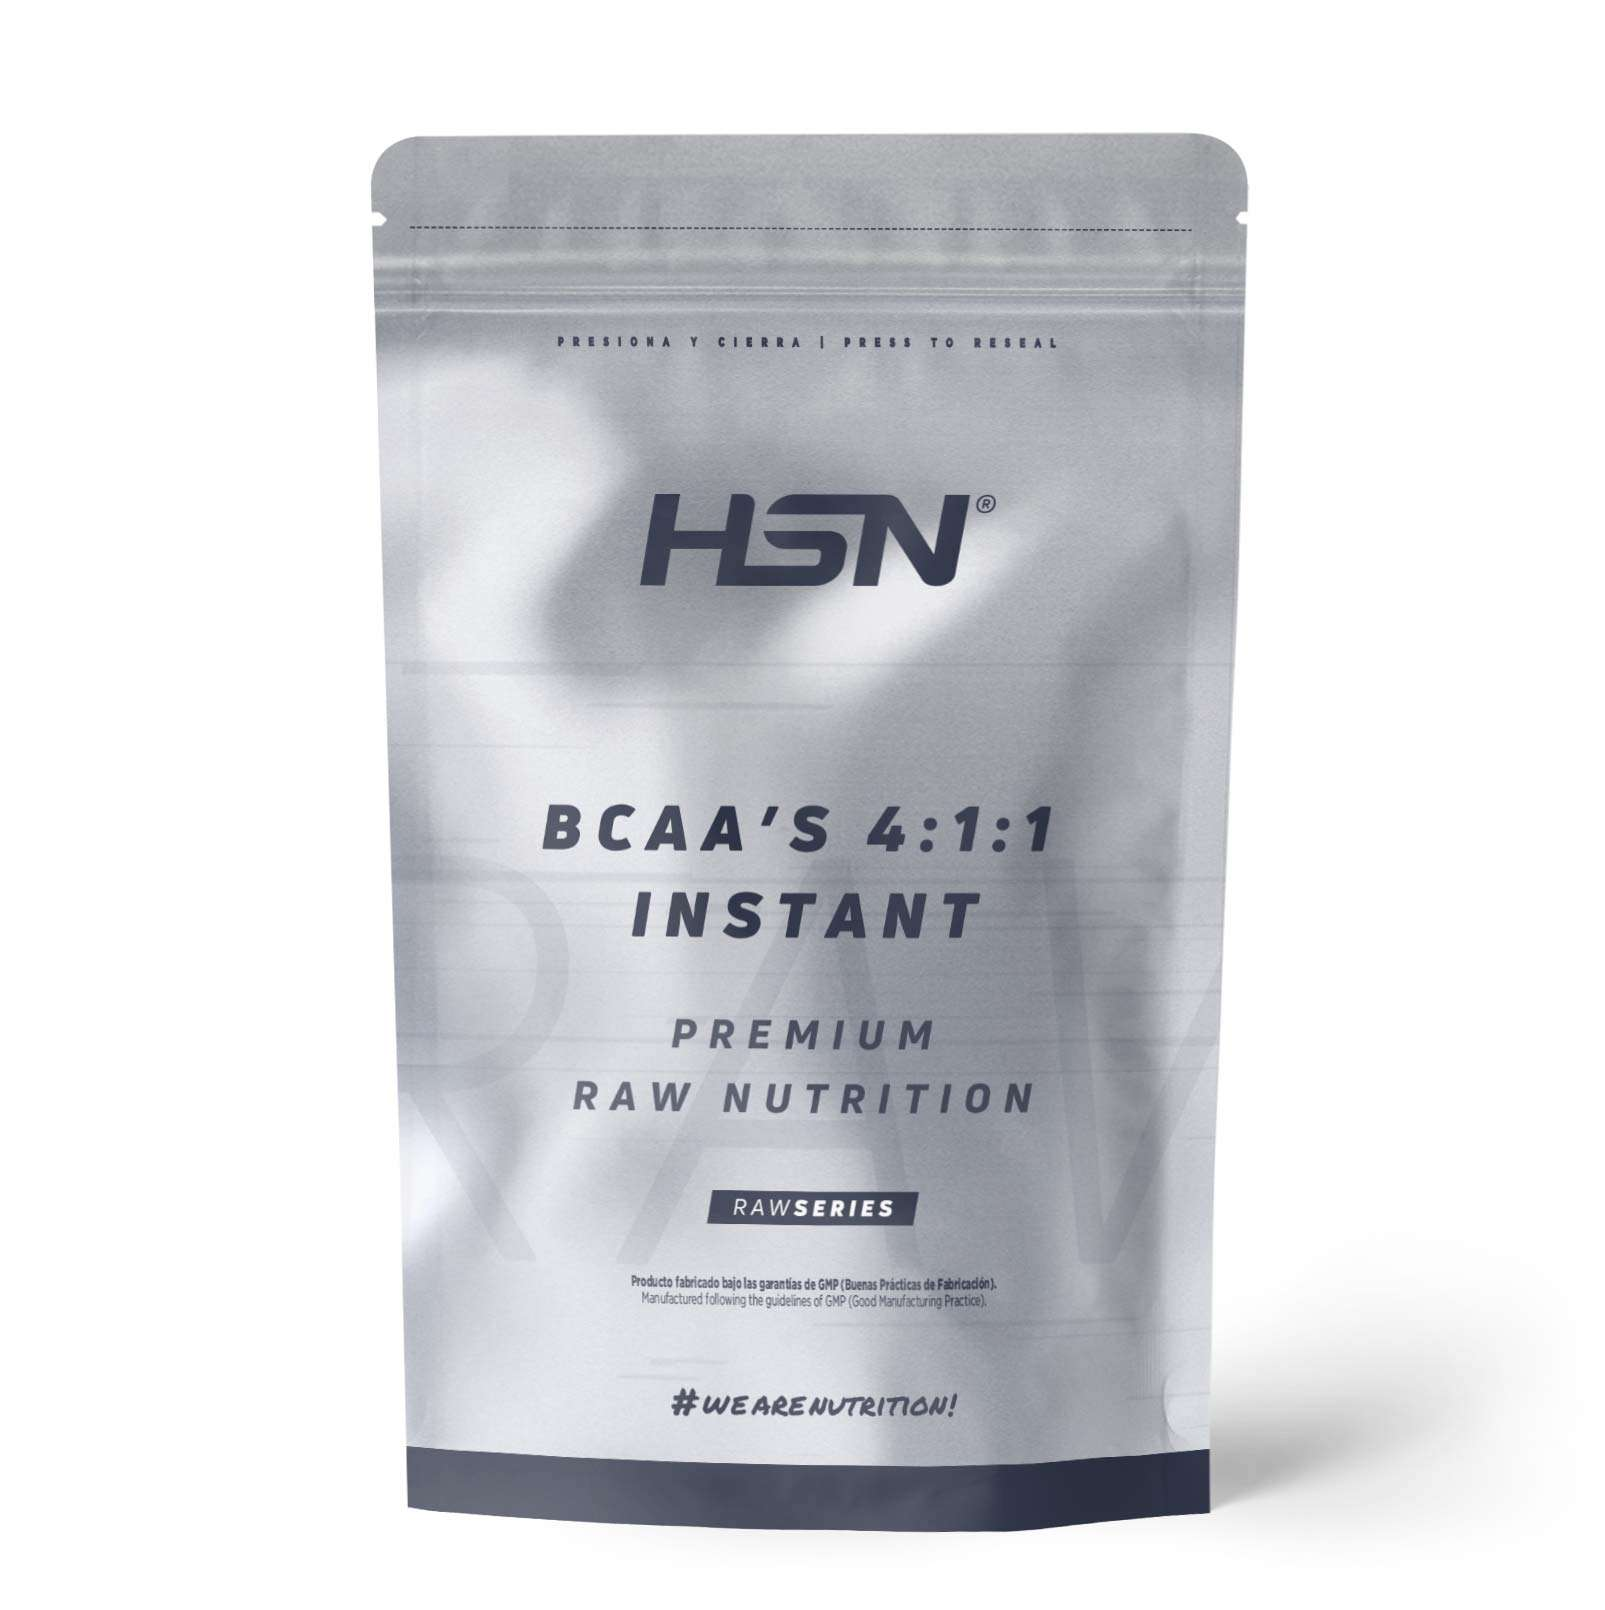 BCAA'S INSTANT 4:1:1 2.0